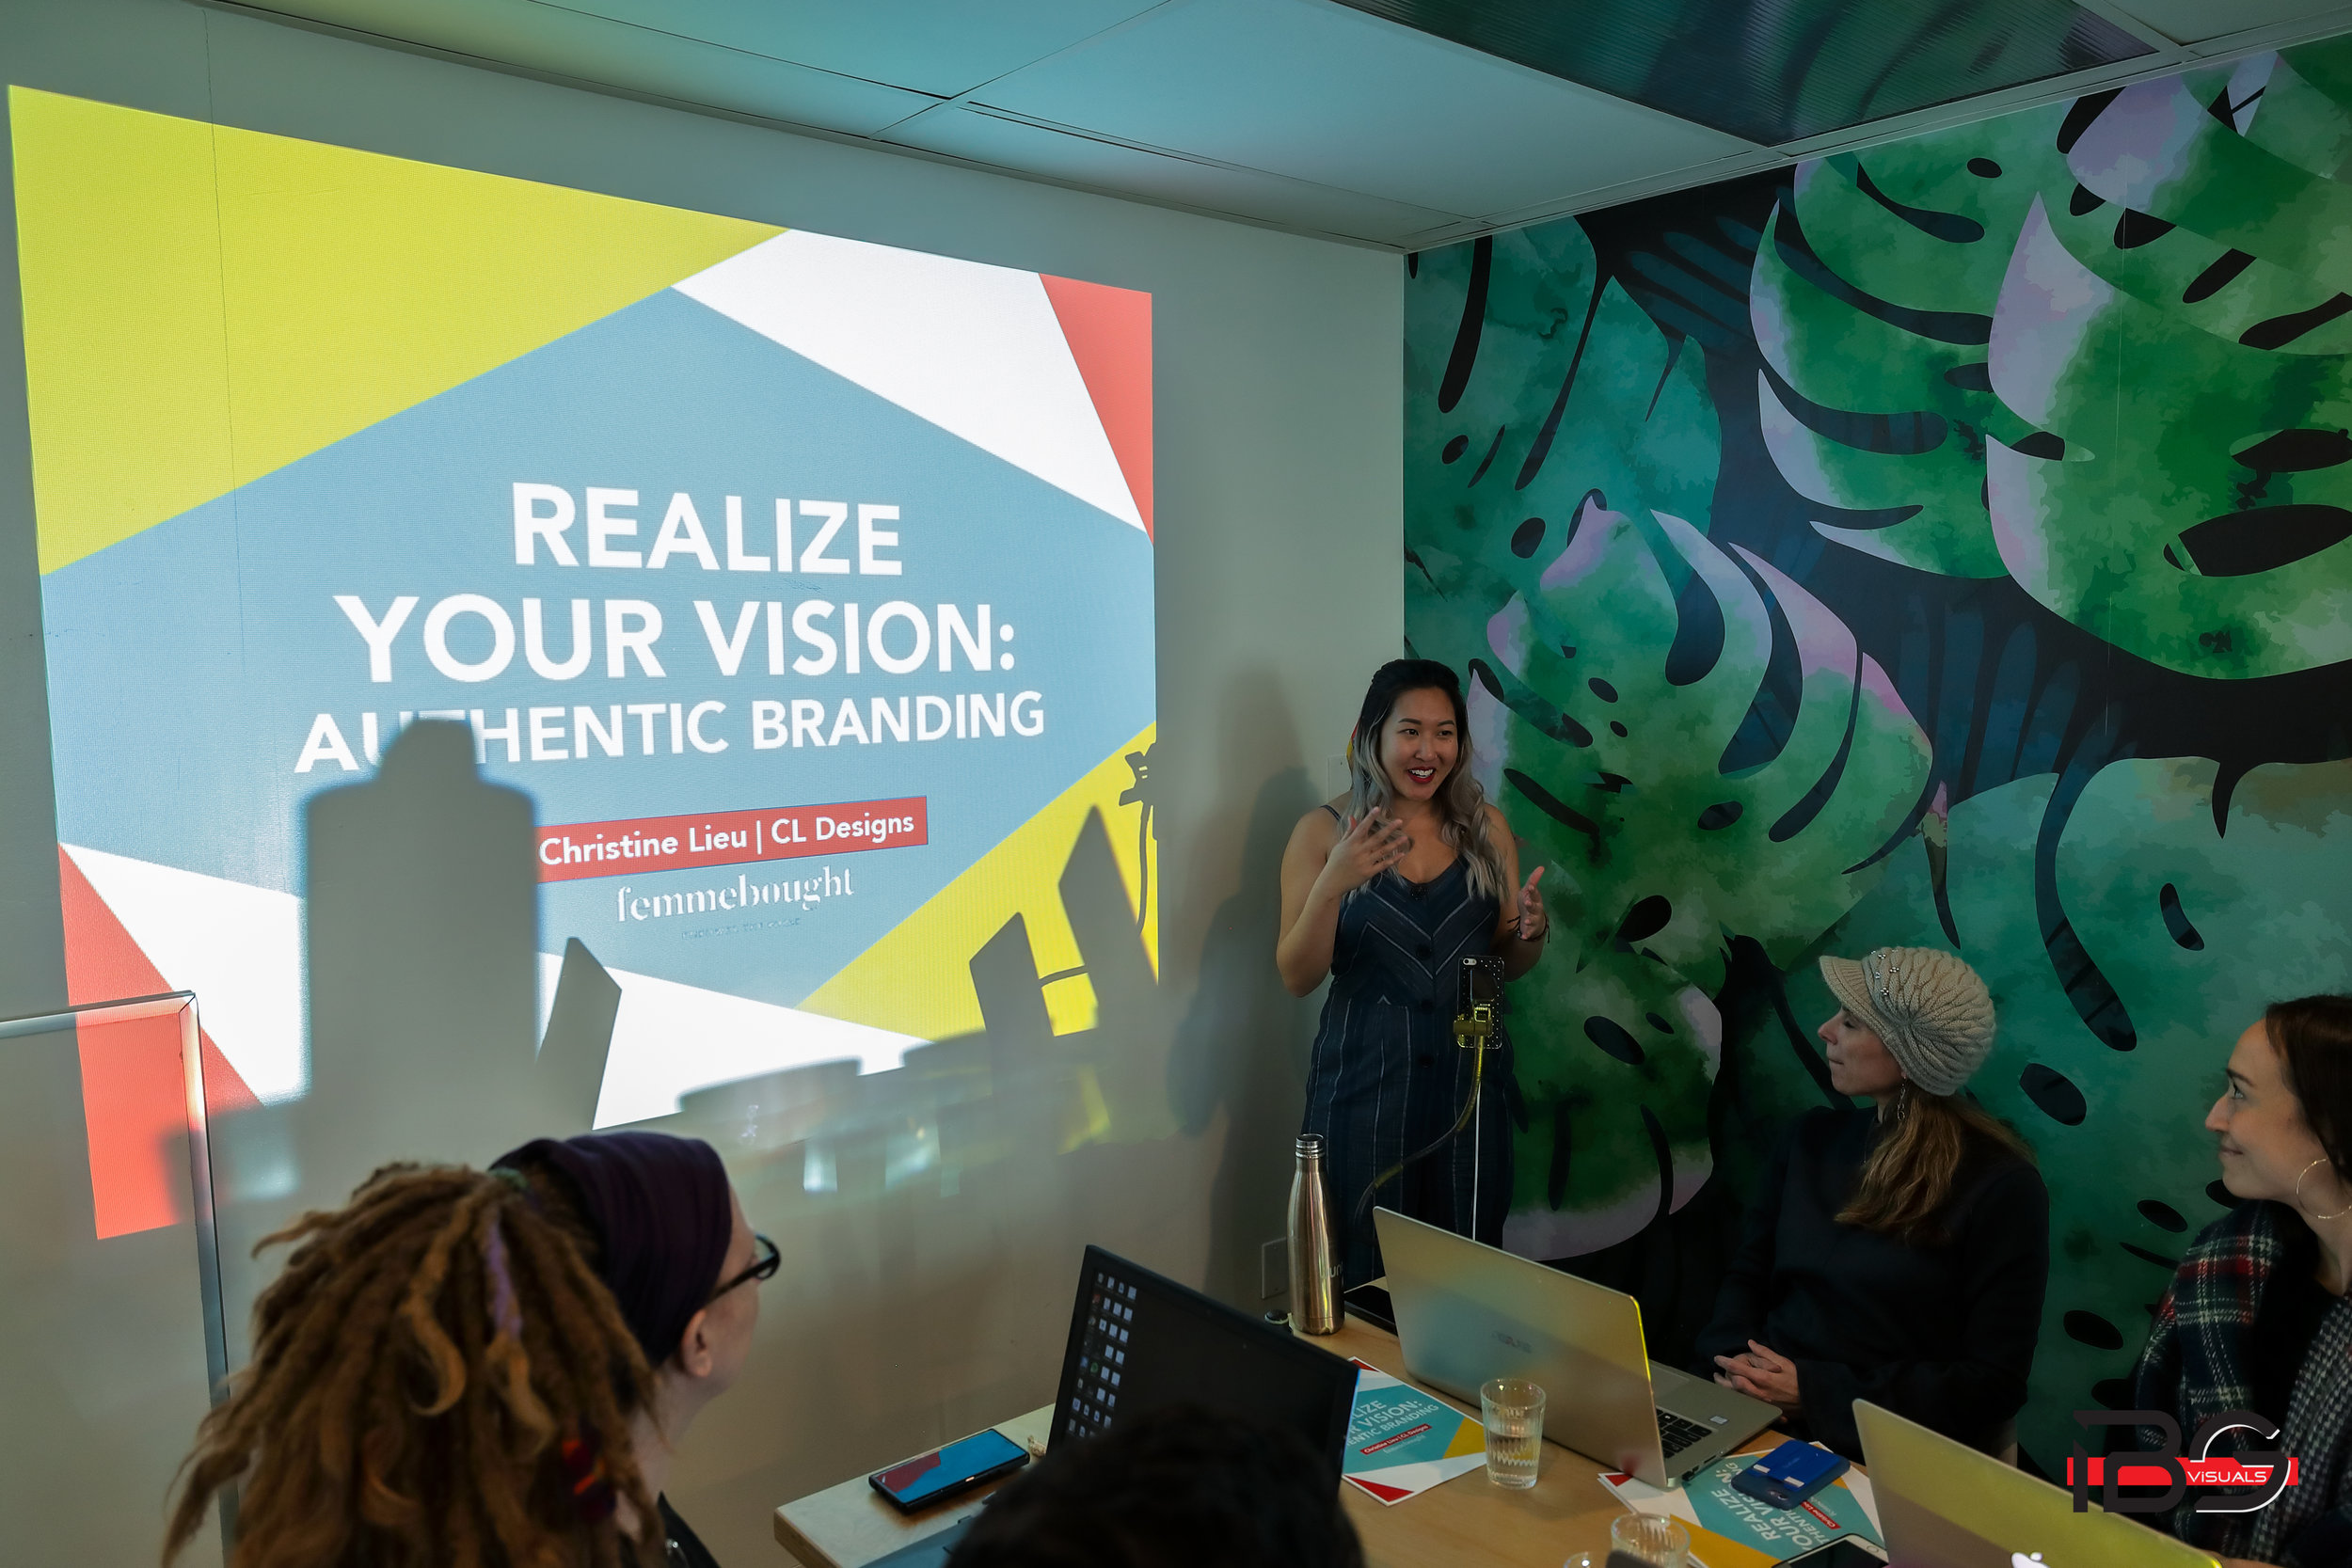 Realize Your Vision Event_061_04.01.2019.jpg